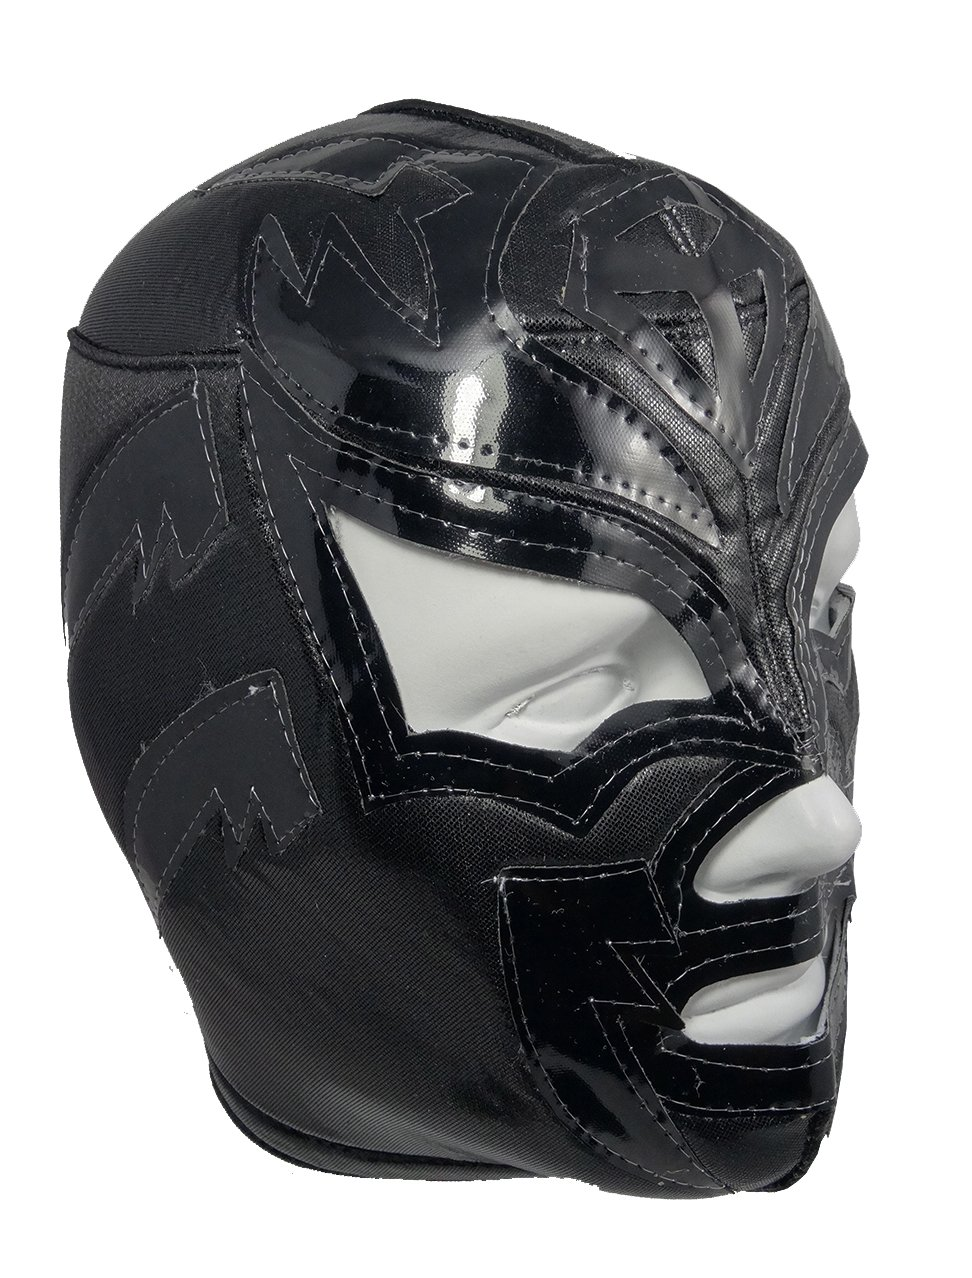 SOMBRA Adult Lucha Libre Wrestling Mask (pro-fit) Costume Wear - Black by Mask Maniac